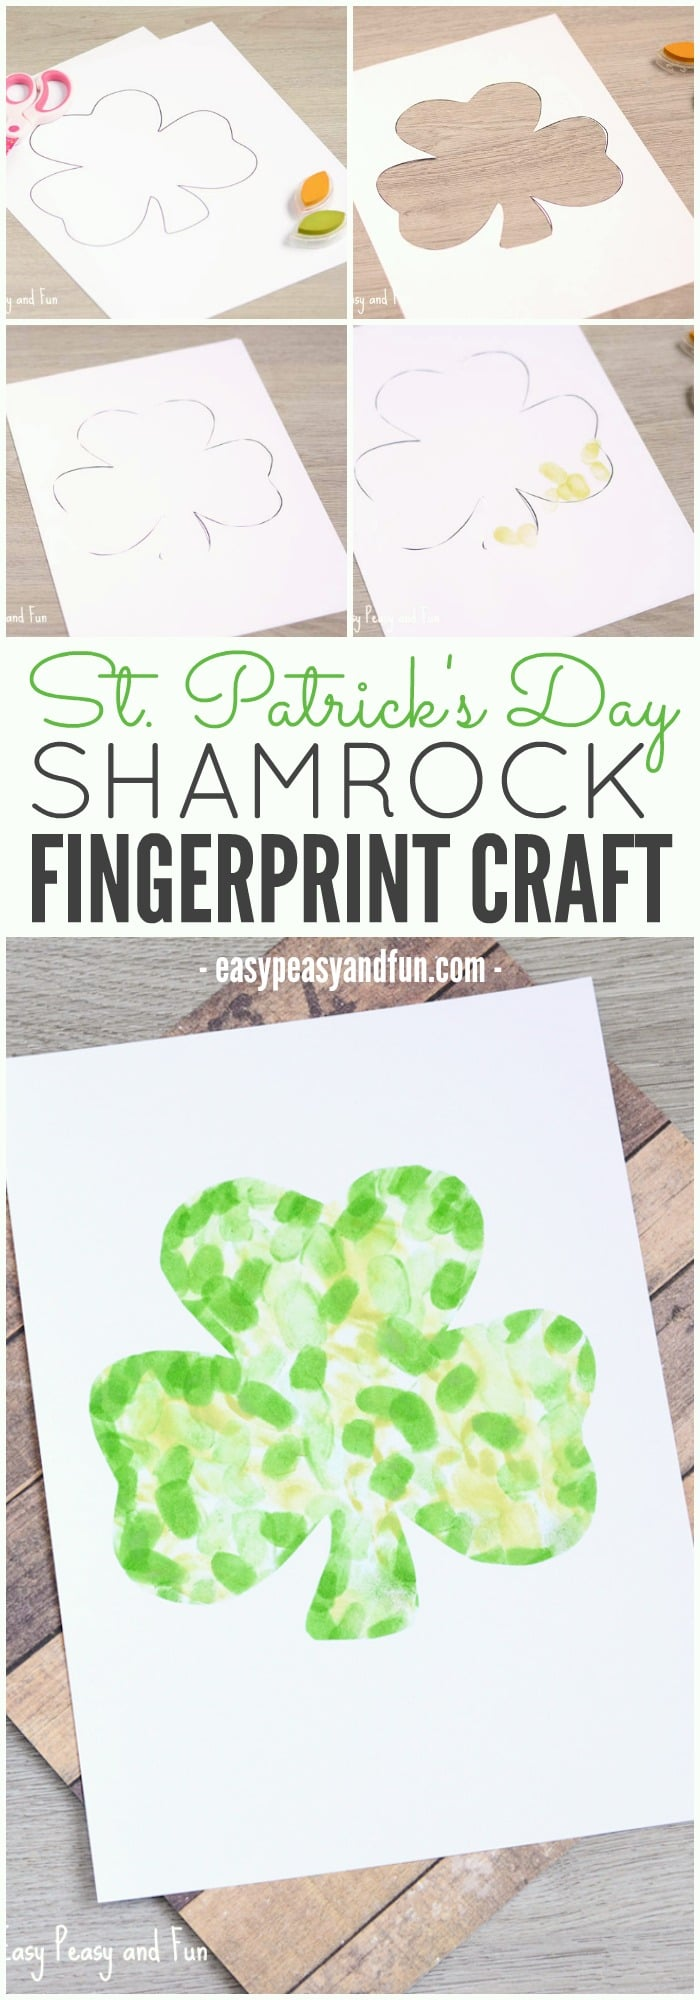 Easy Fingerprint Shamrock Craft